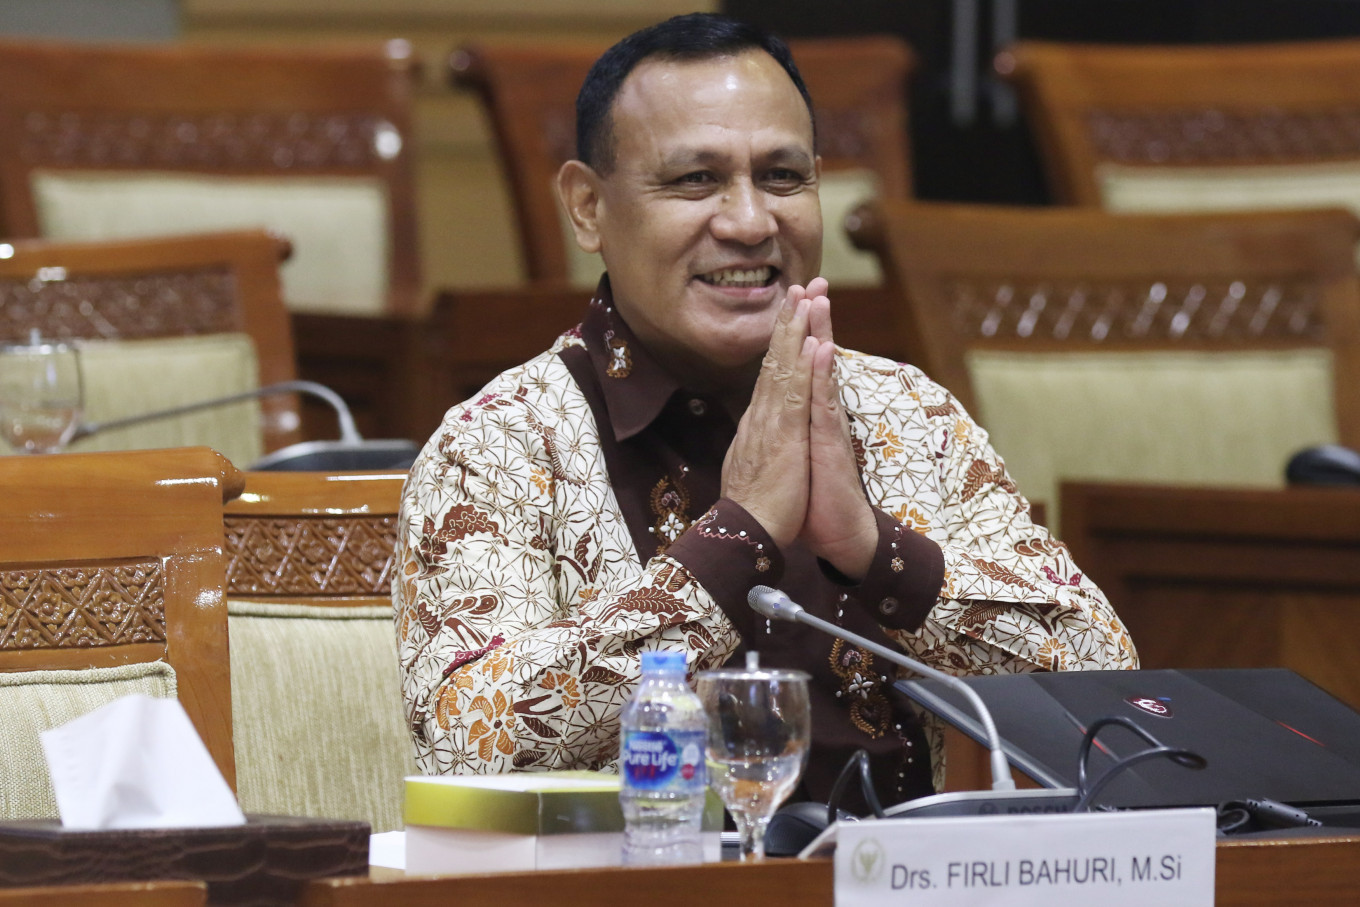 Antigraft group reports KPK leader for 'hedonistic lifestyle'